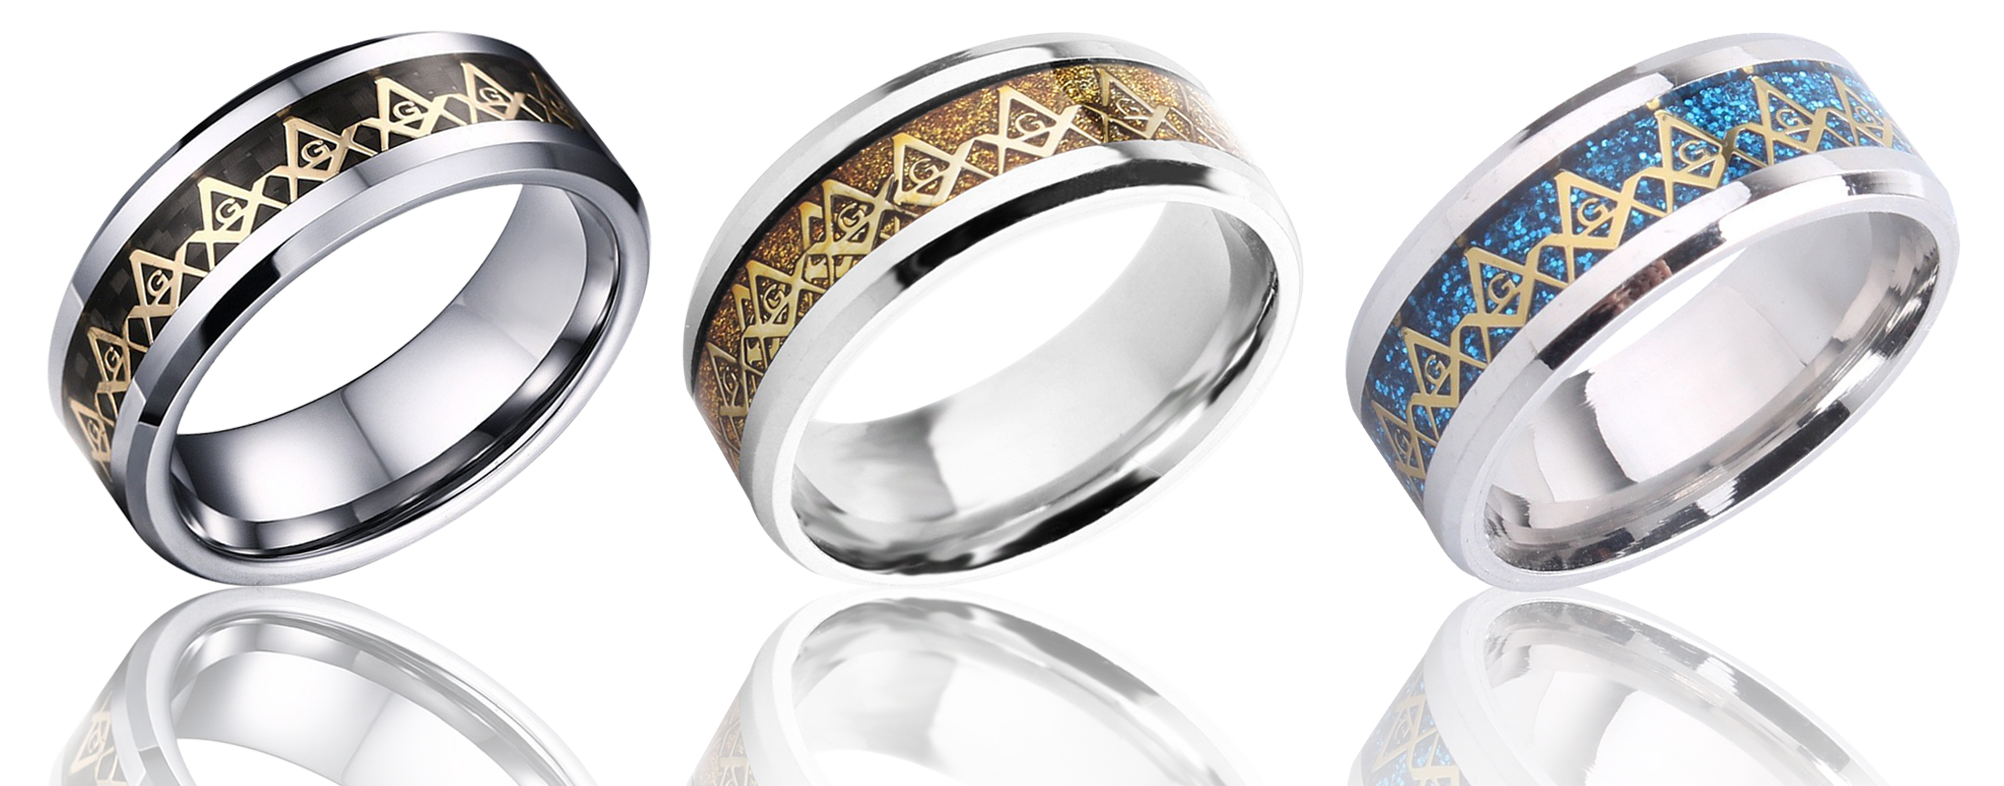 Masonic Rings For Men and Women! [Gold, Blue, Black]